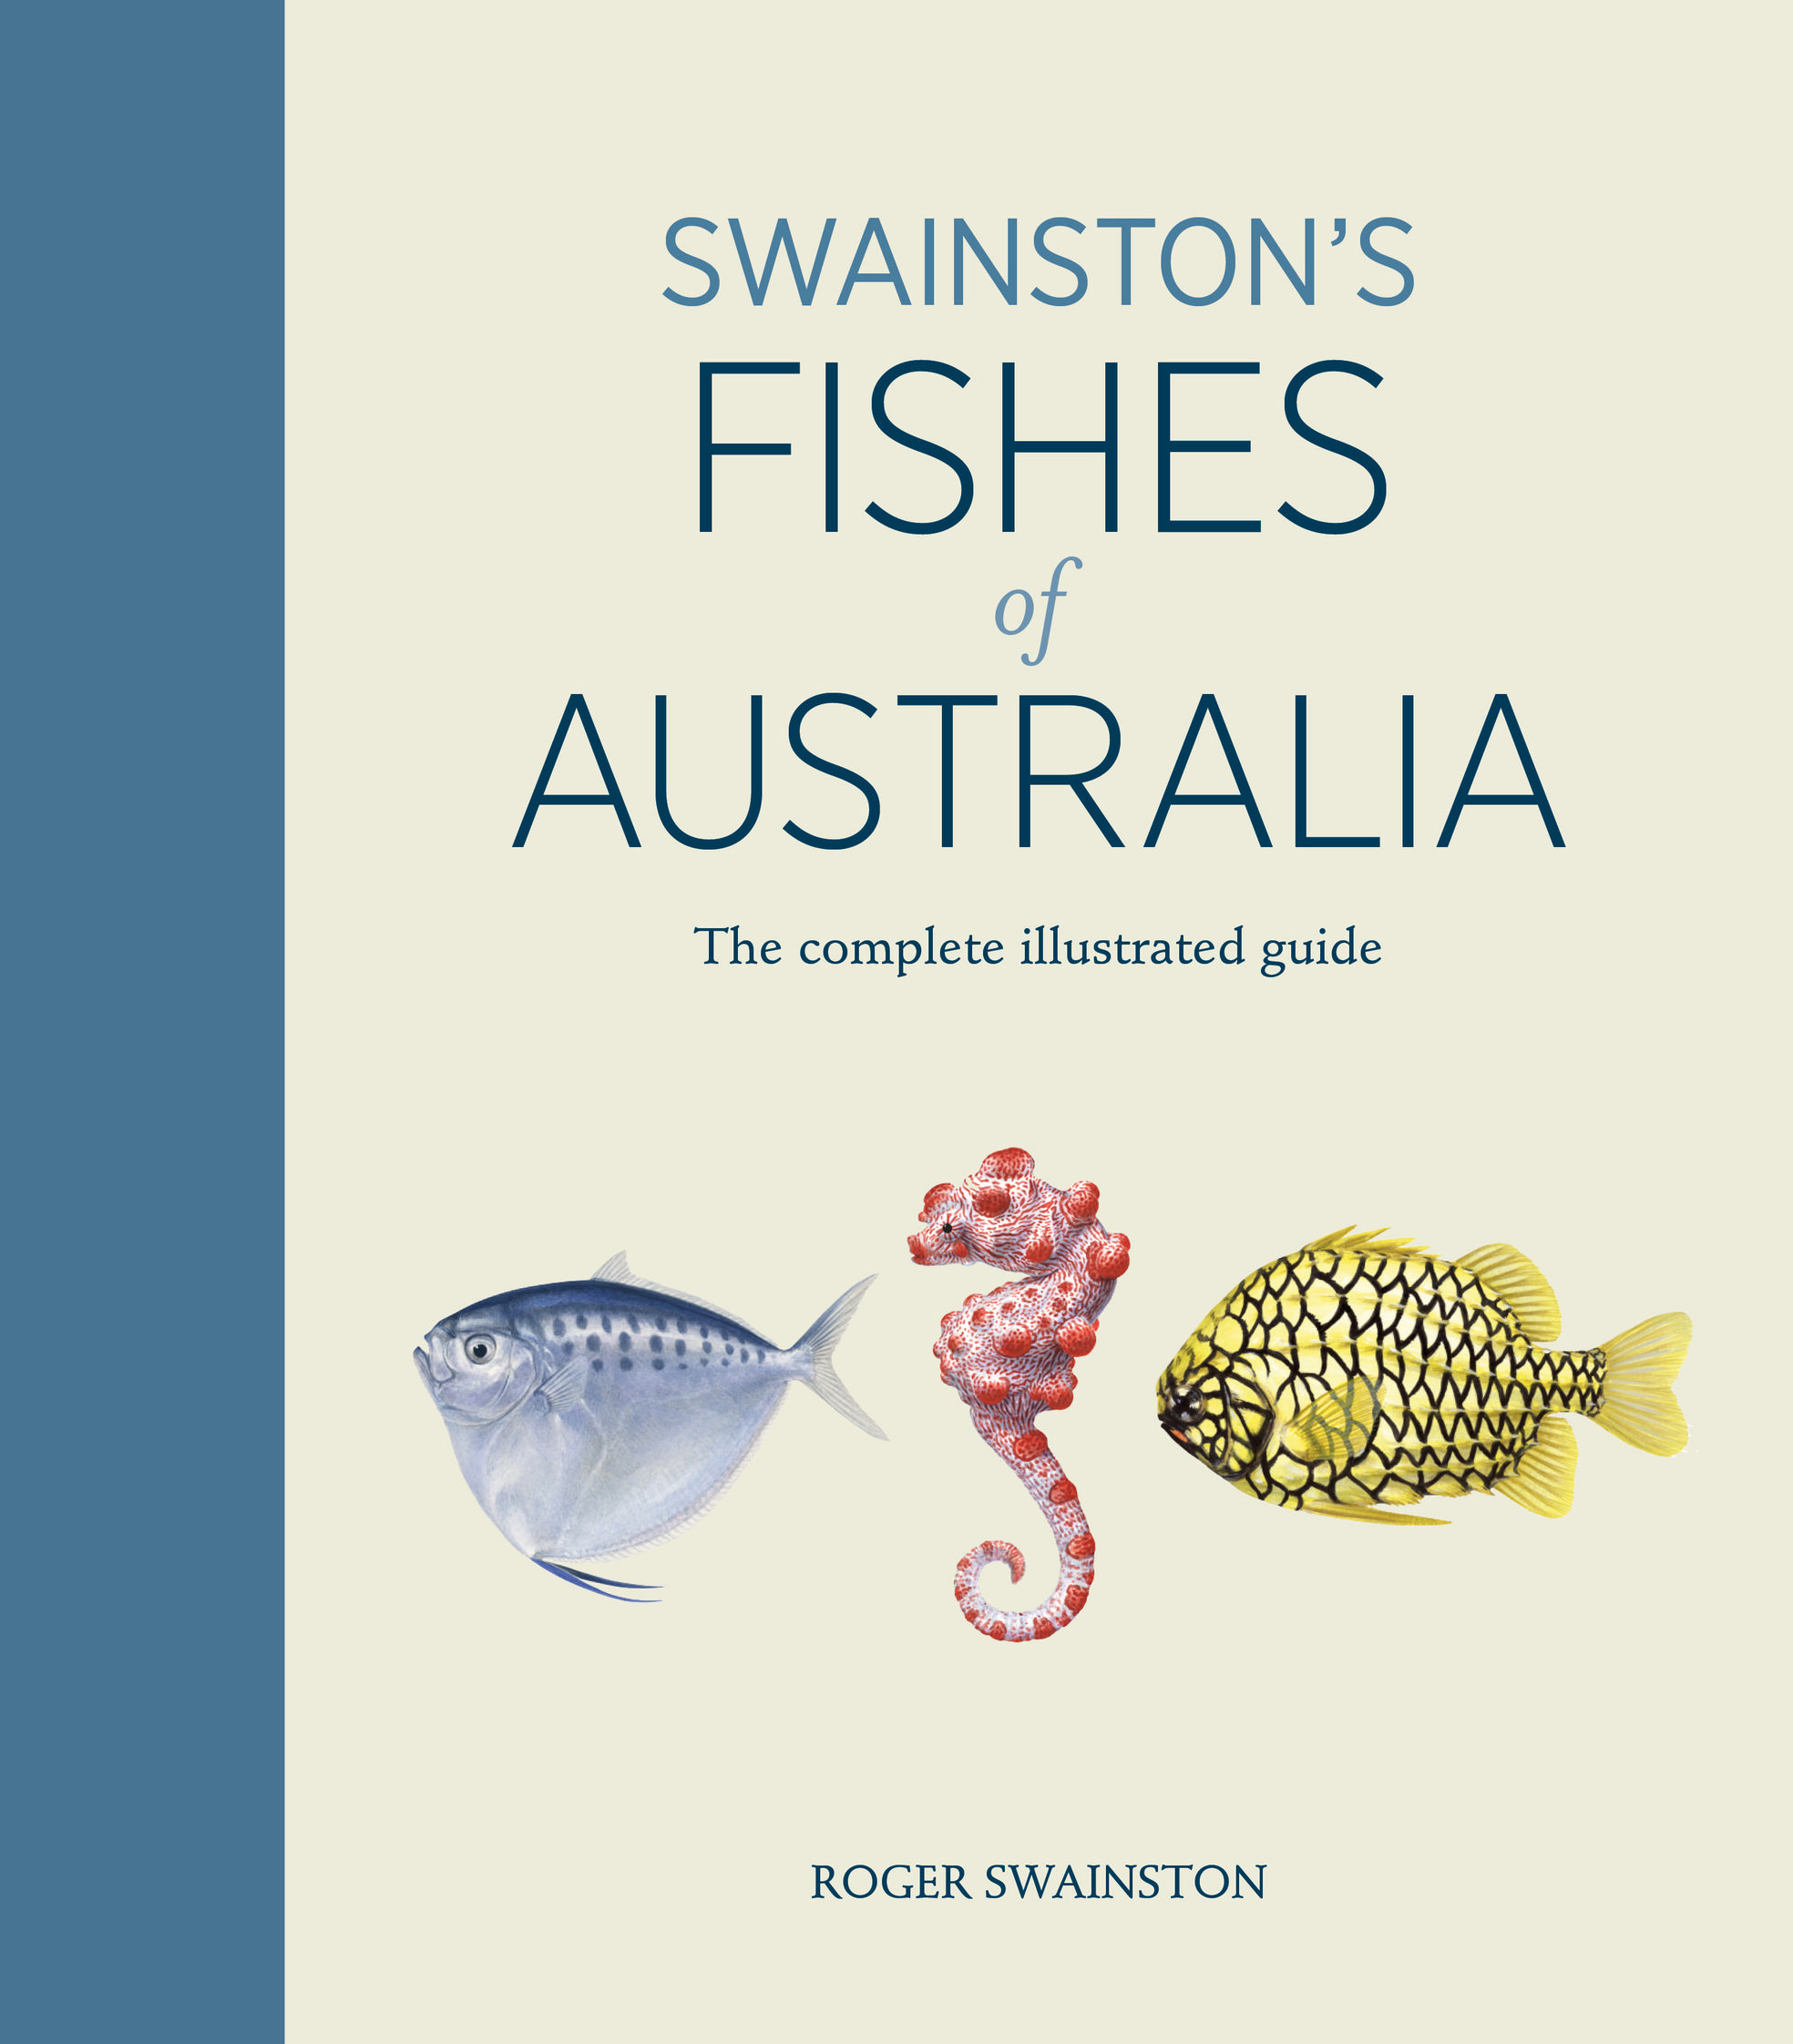 Swainston's Fishes of Australia: The complete illustrated guide